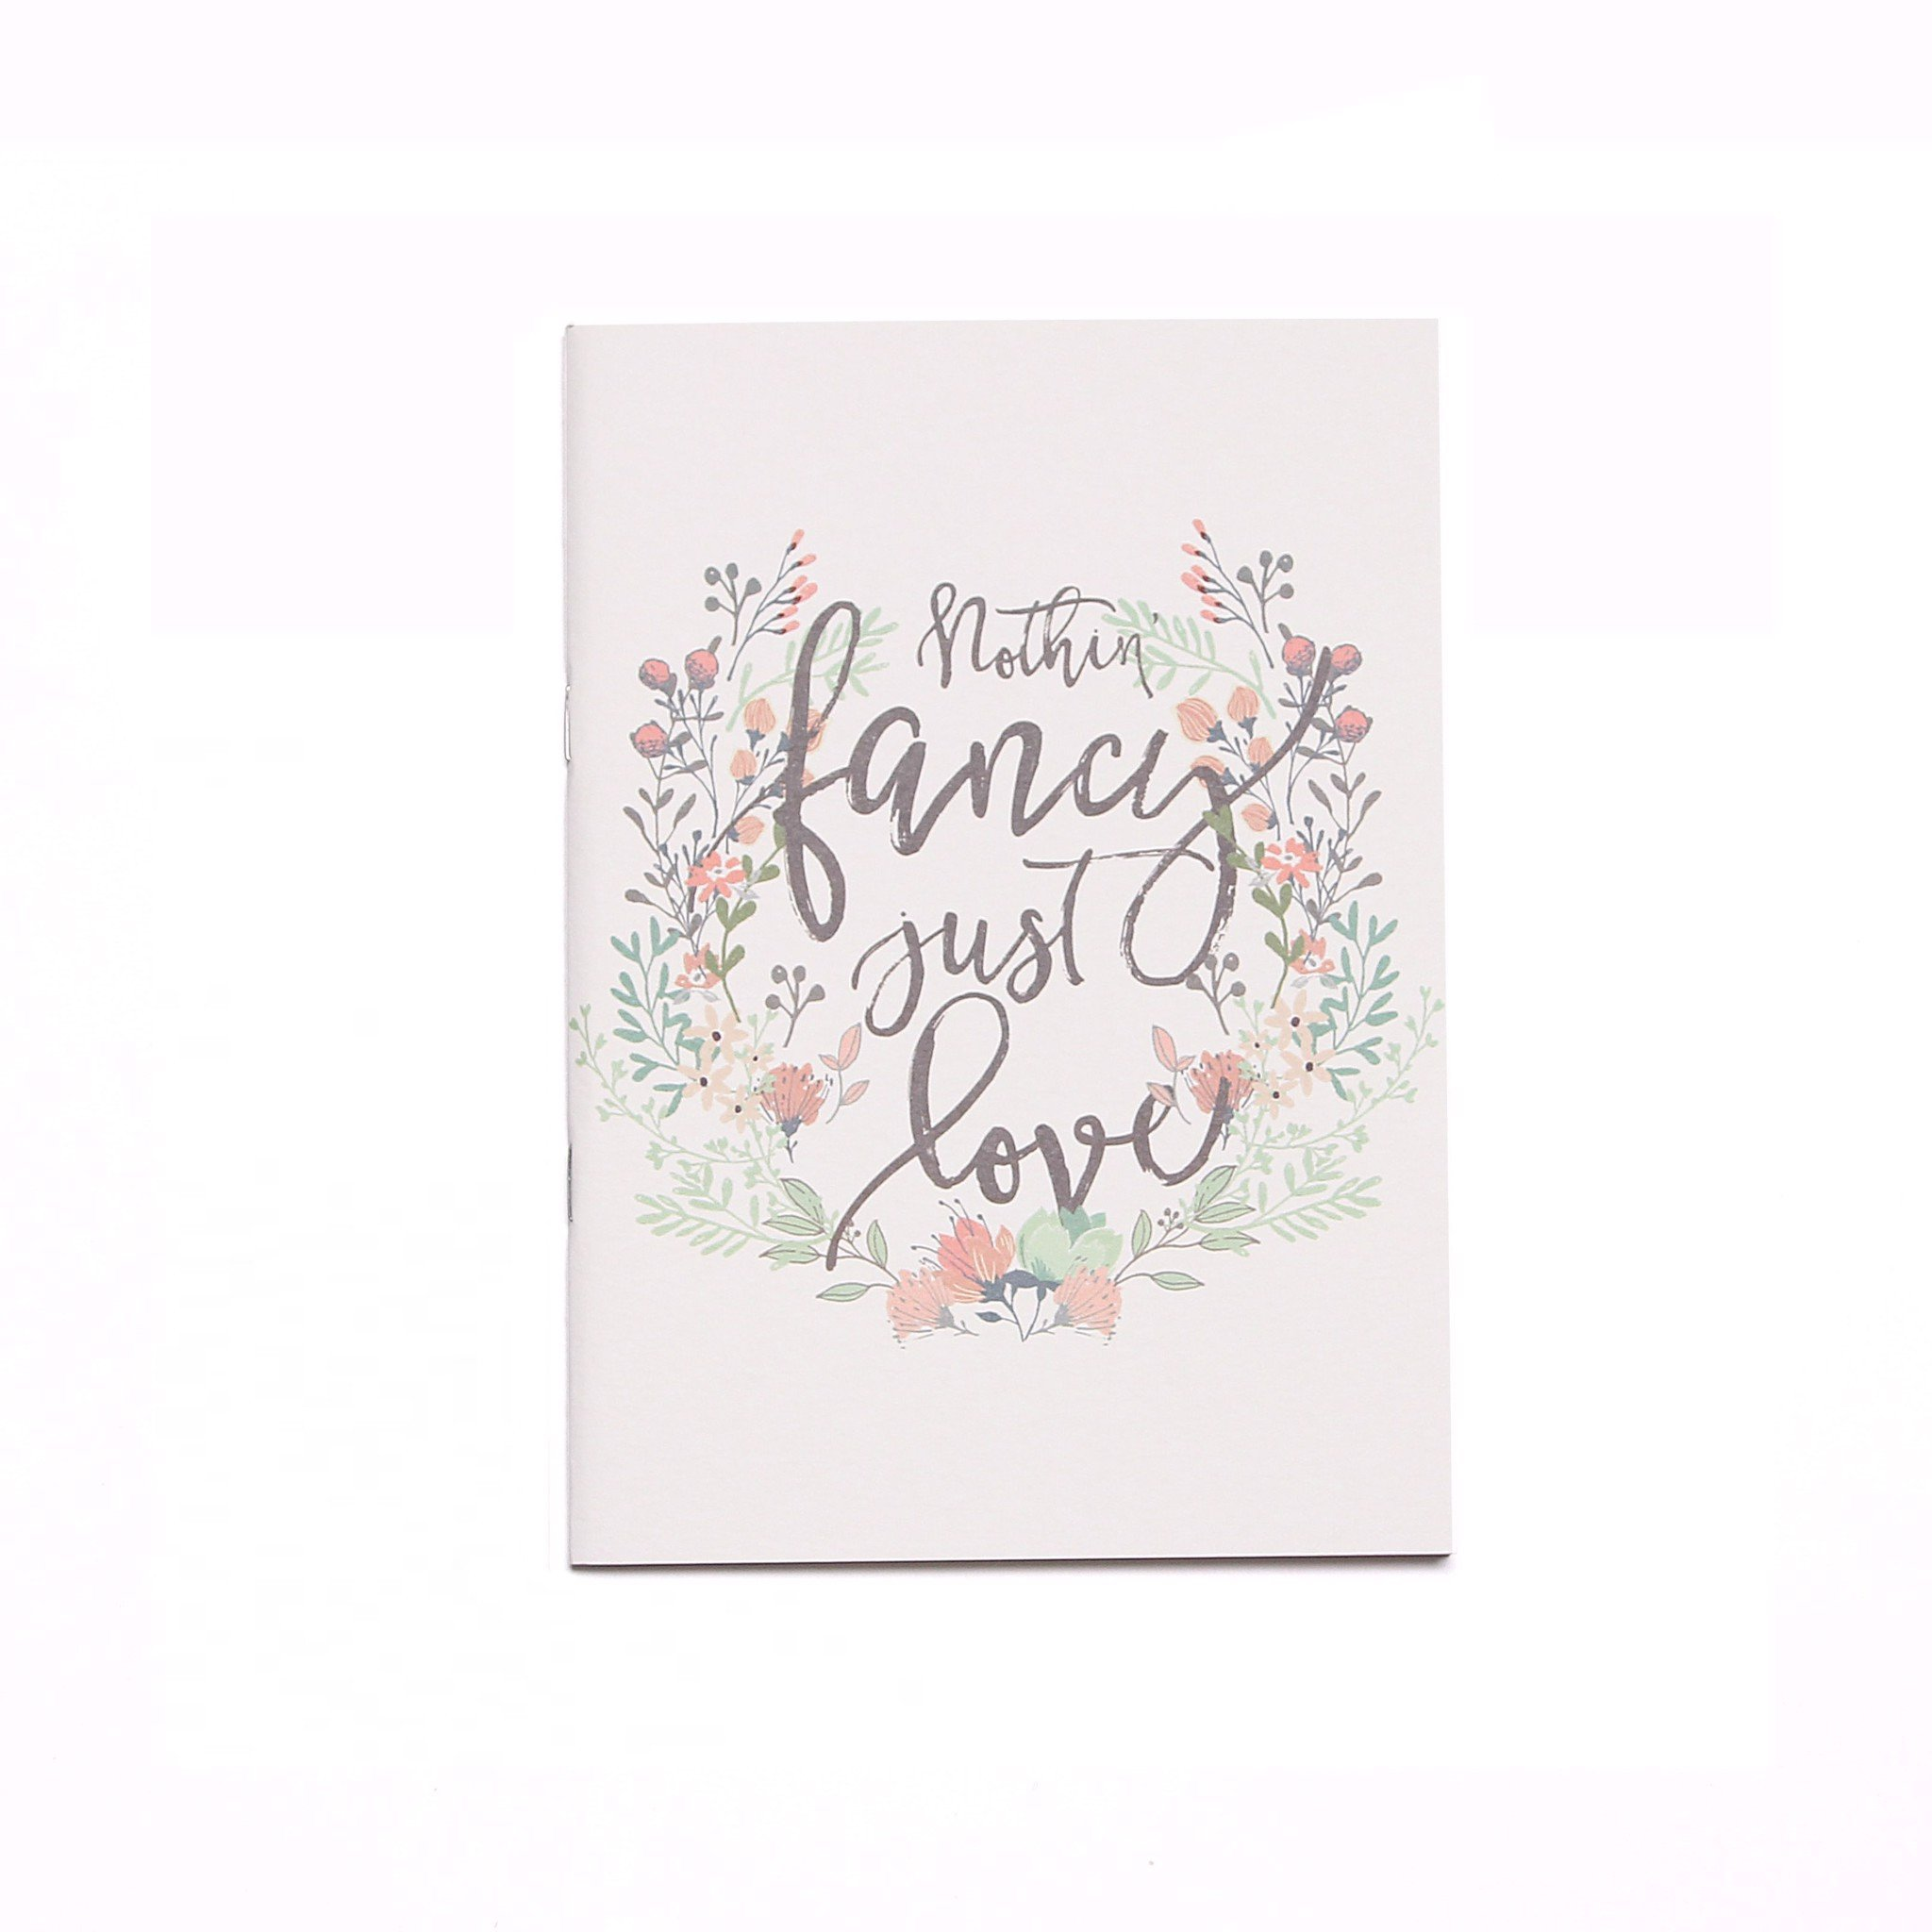 Sổ Tay Họa Tiết Love Quotes Trắng - Notebook White Love Quotes Edition